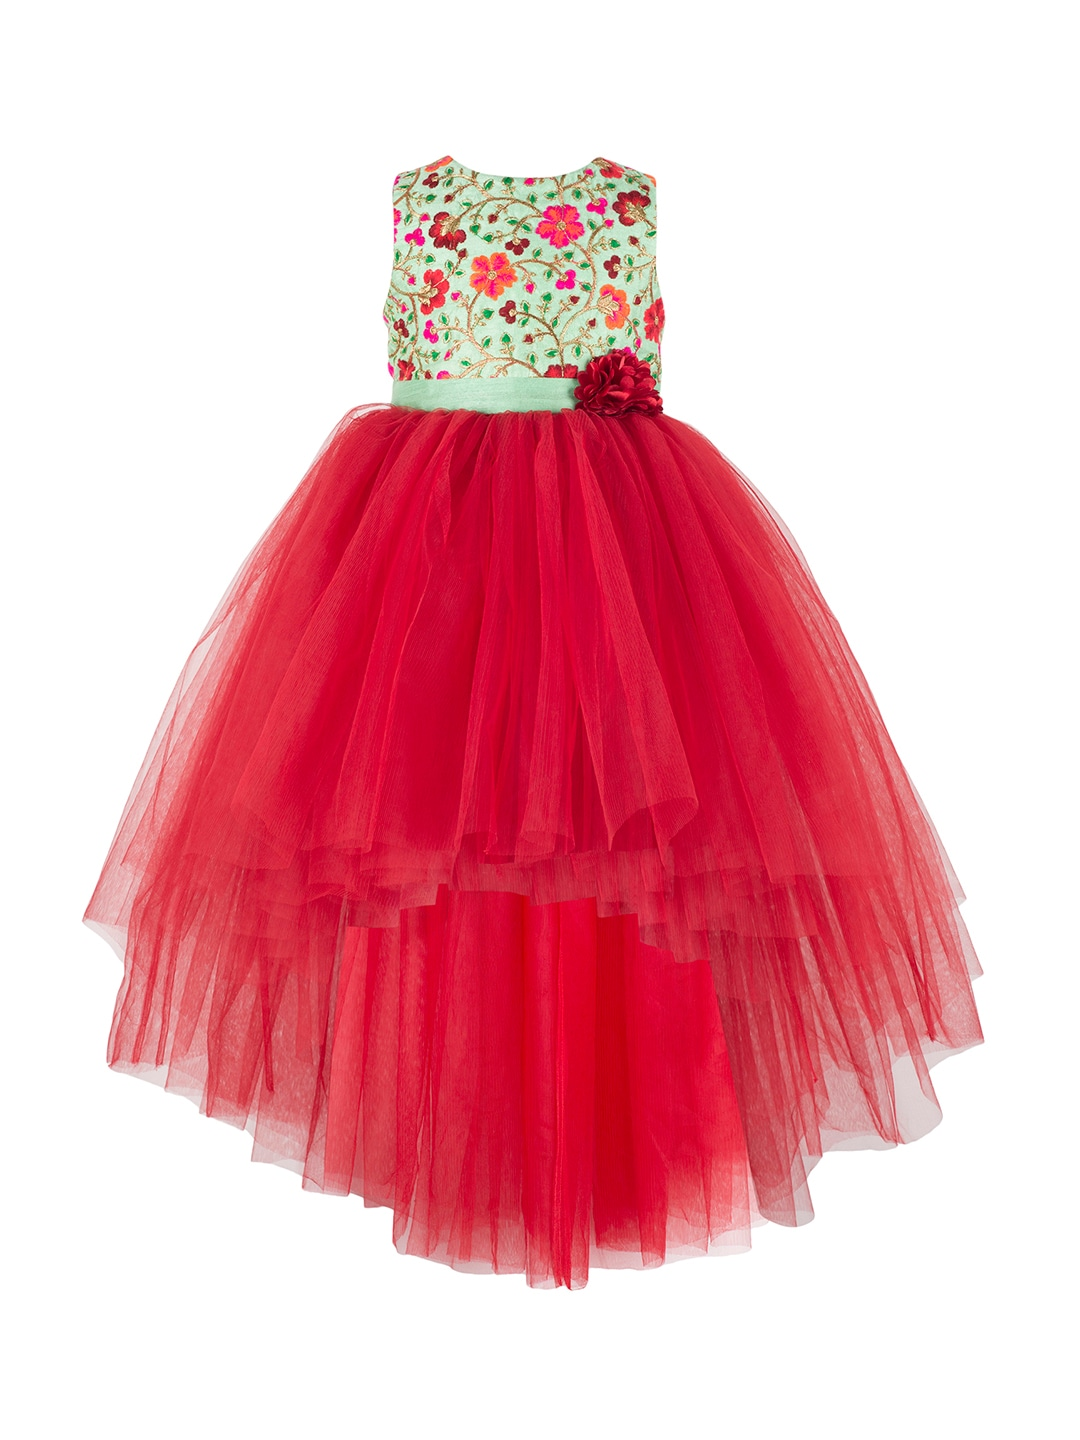 84c0fb2008c Kids Party Dresses - Buy Partywear Dresses for Kids online